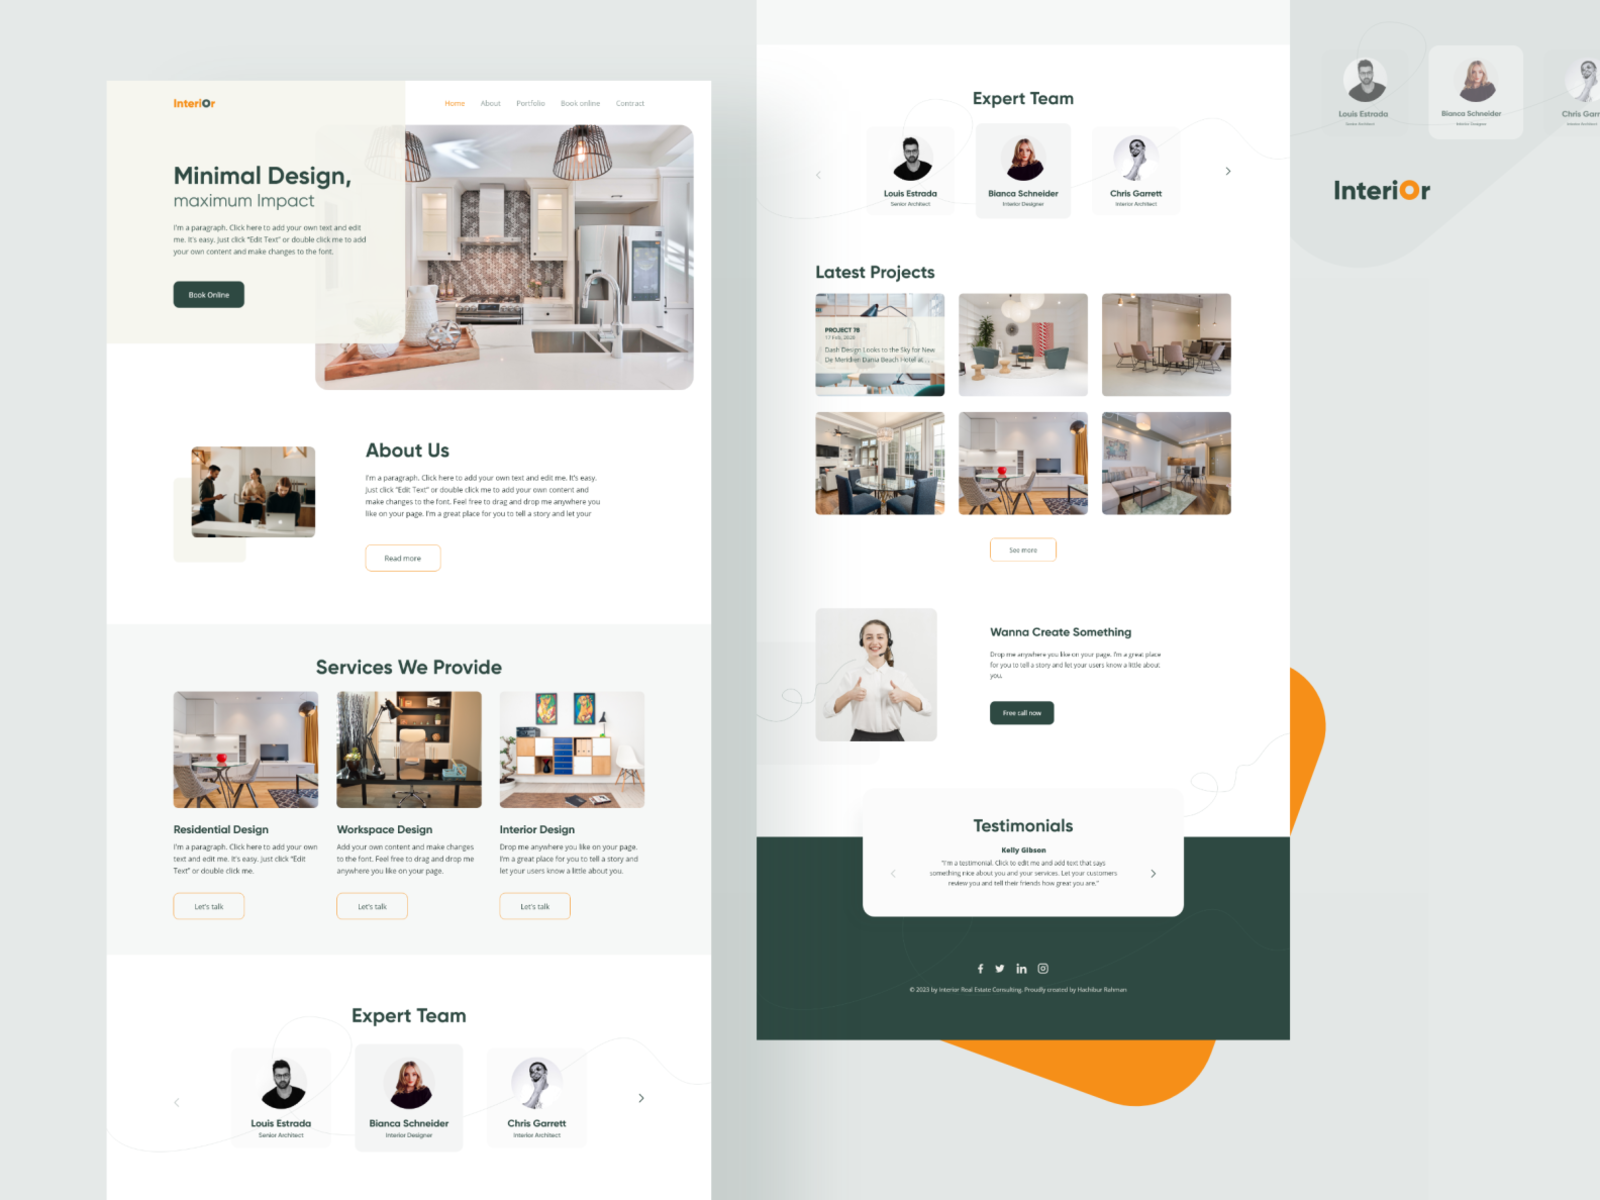 Interior Design Company By Hachibur Rahman On Dribbble